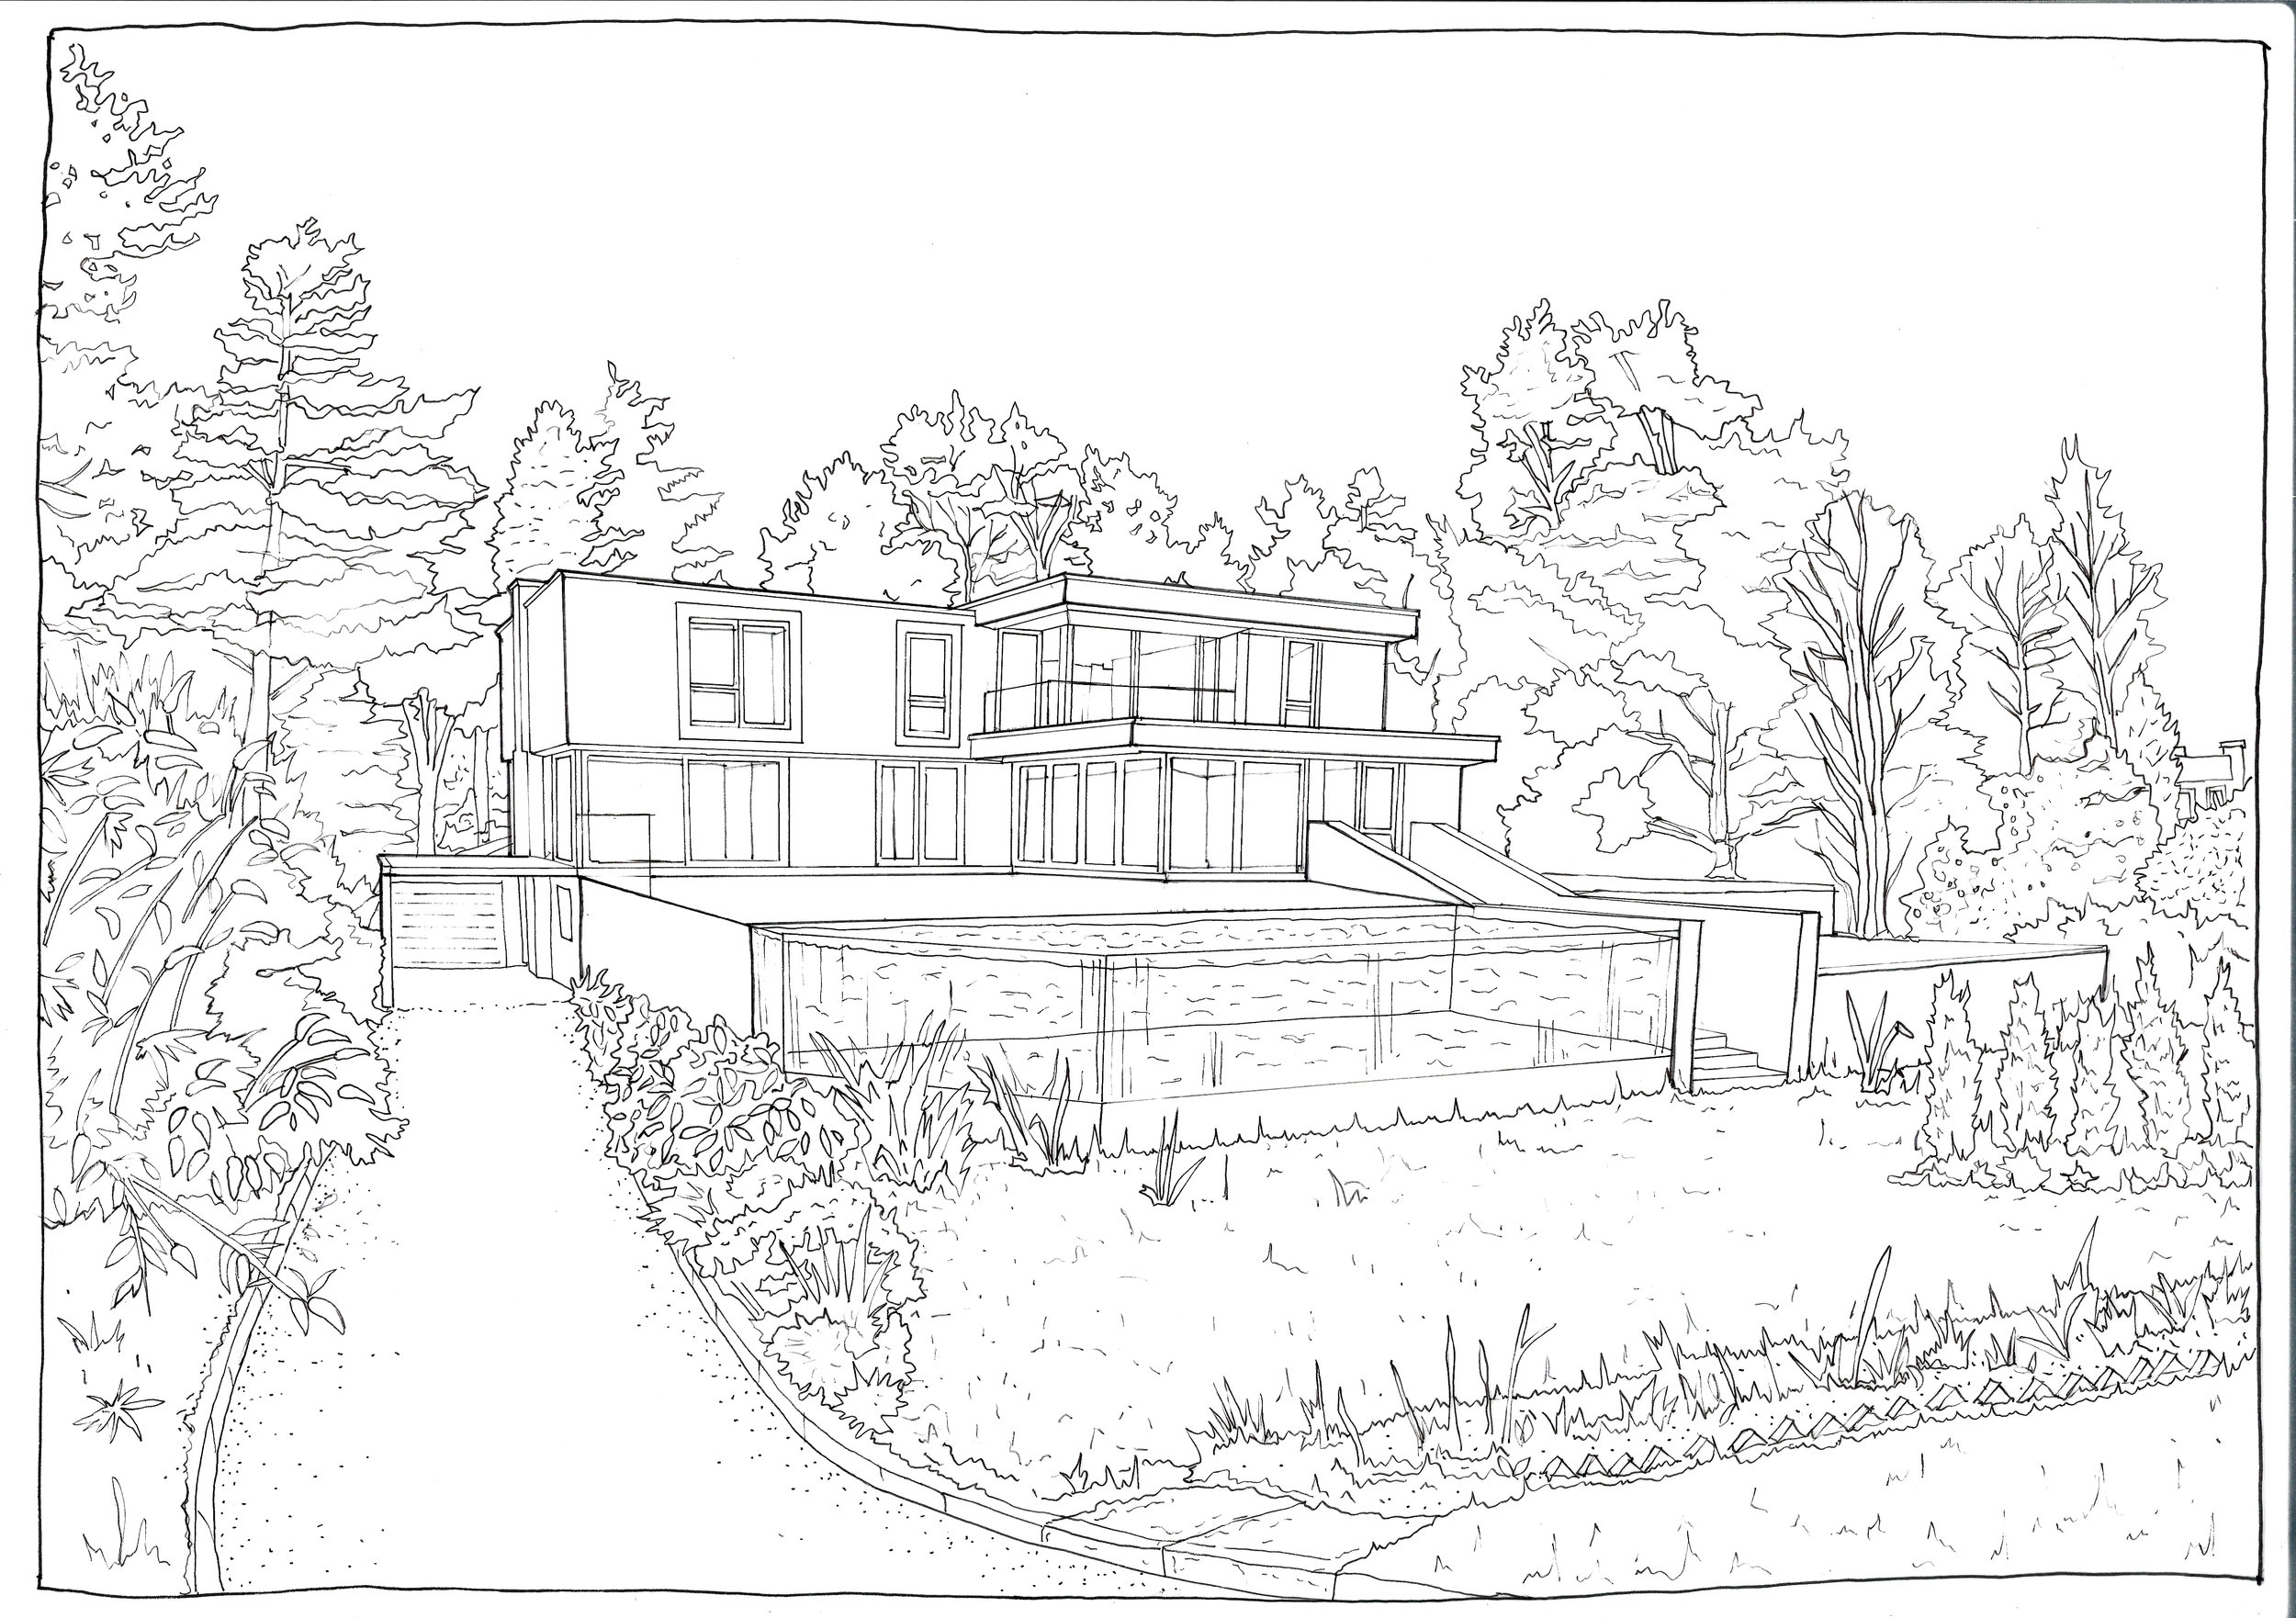 SDA-Caldy-[Rear-LineDrawing].jpg